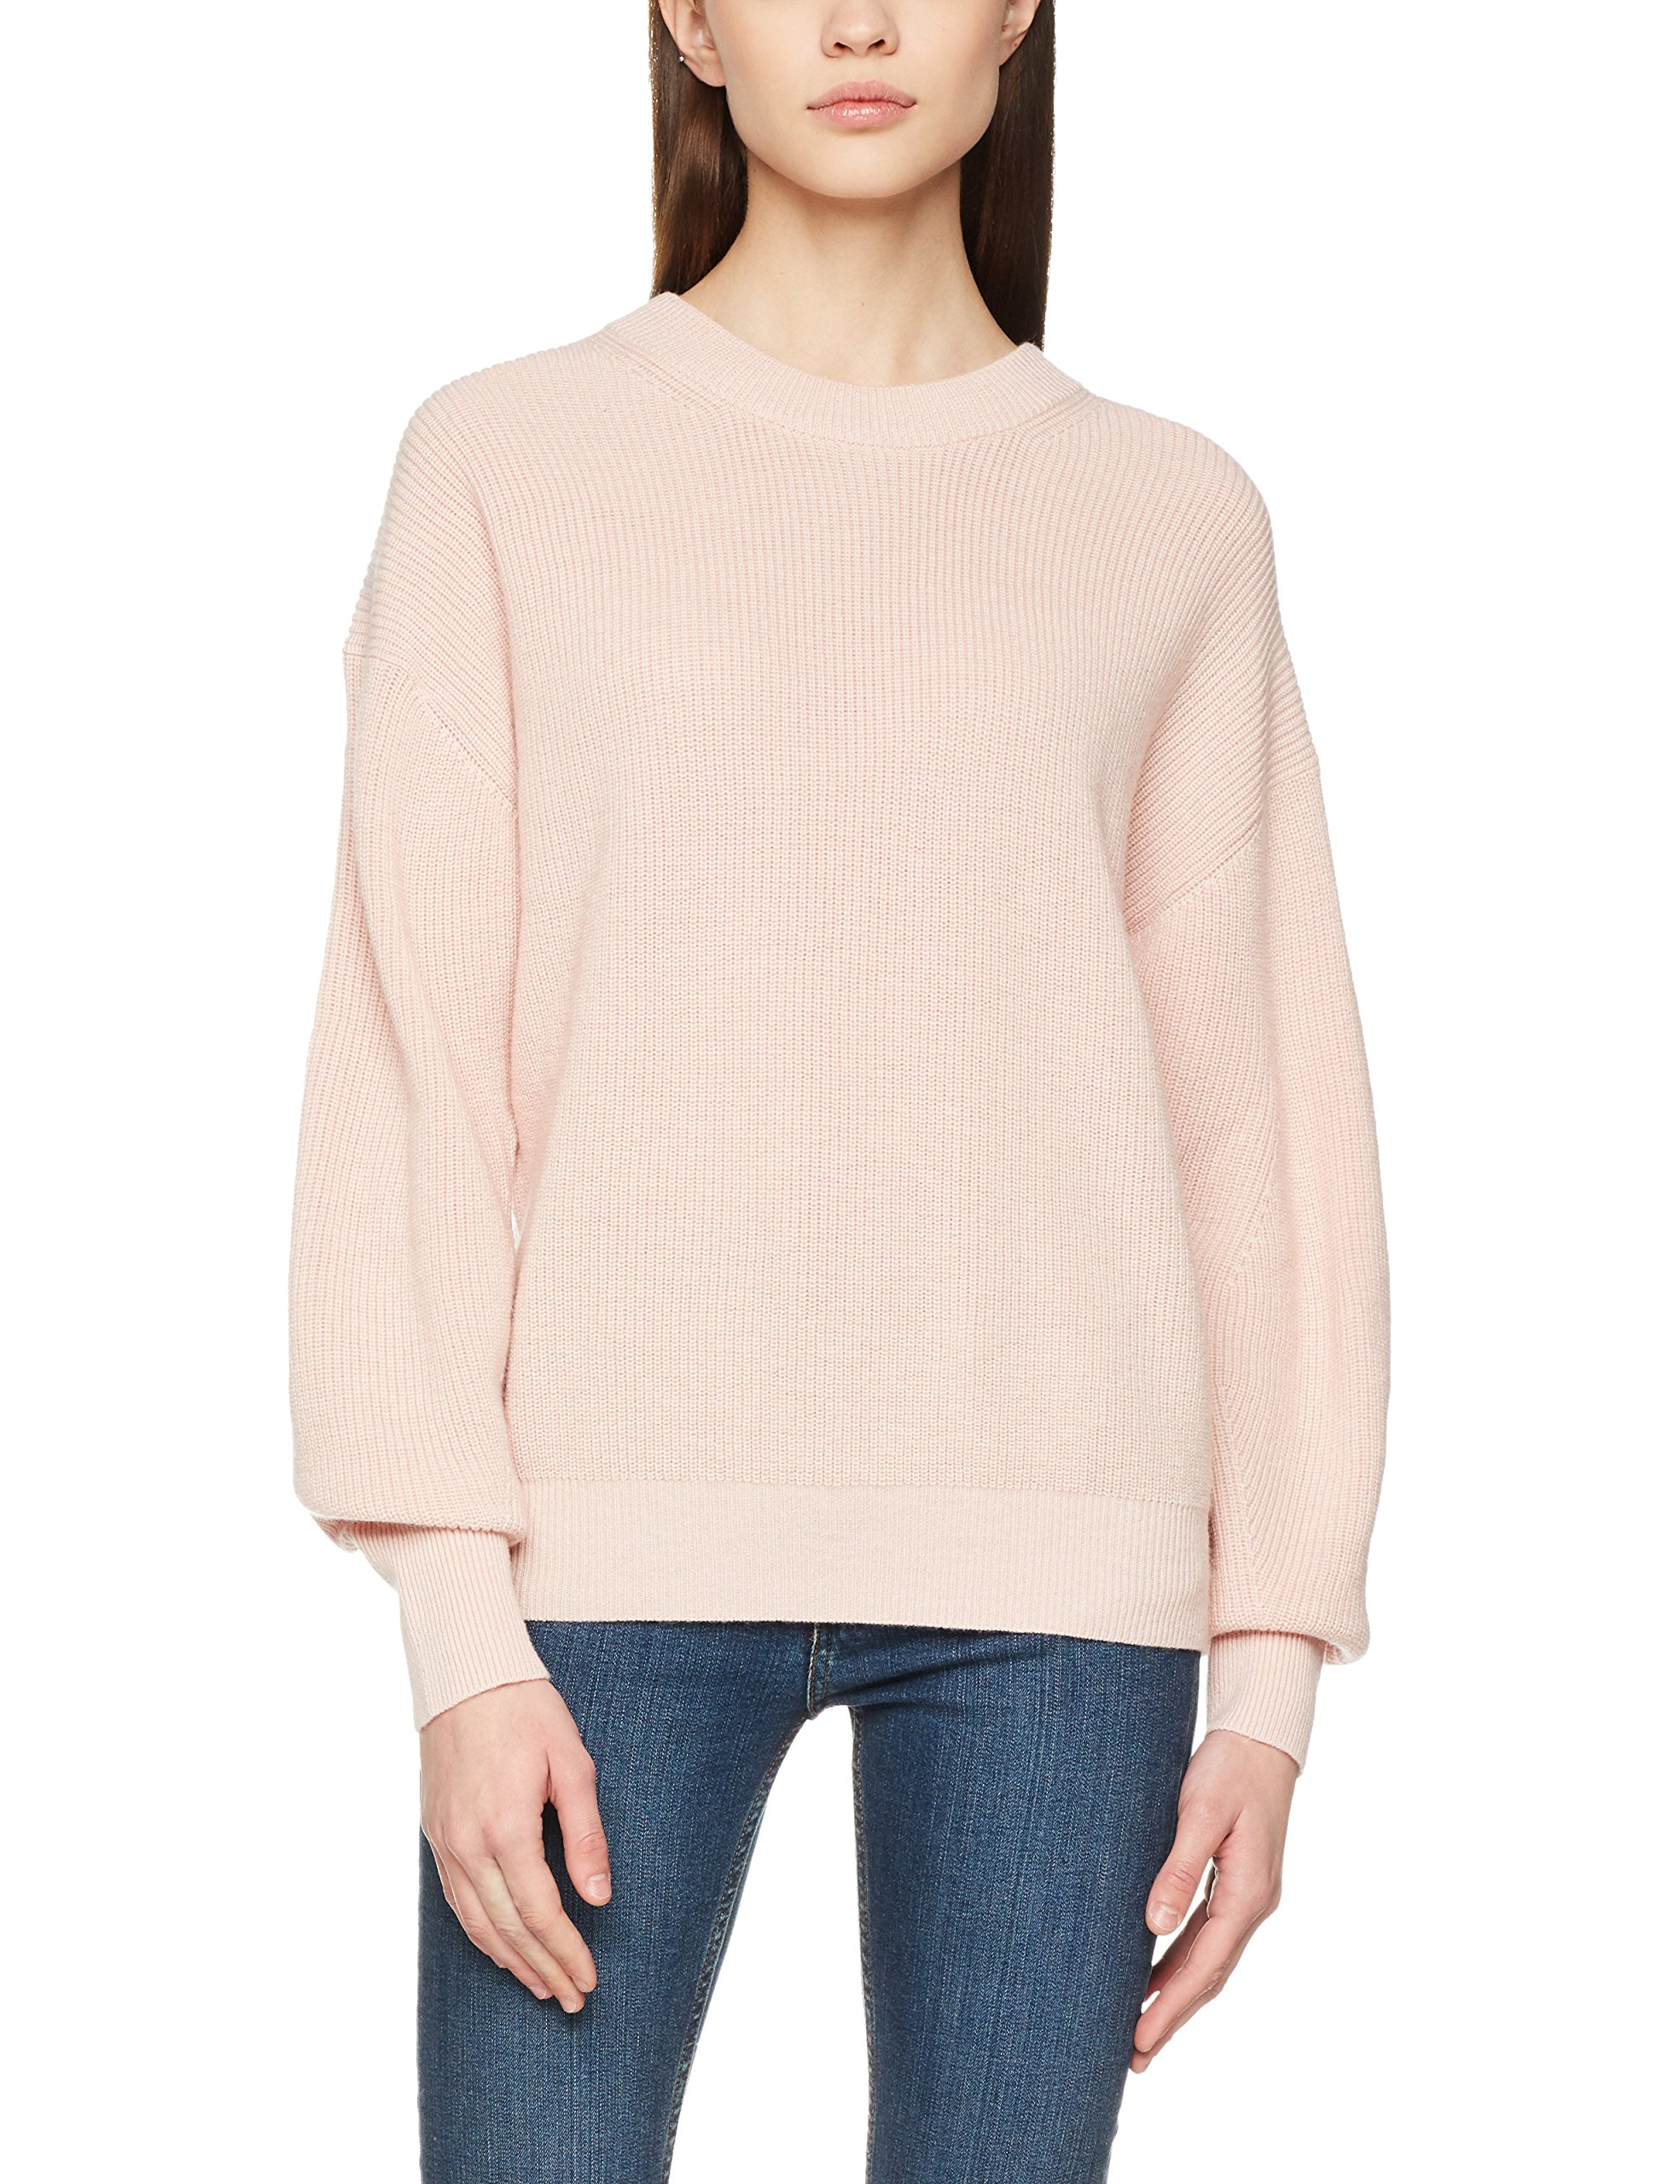 Filippa Wool Rib cashmere K Pullover PullRosetearose12taille FabricantLargeFemme rCBoedxW